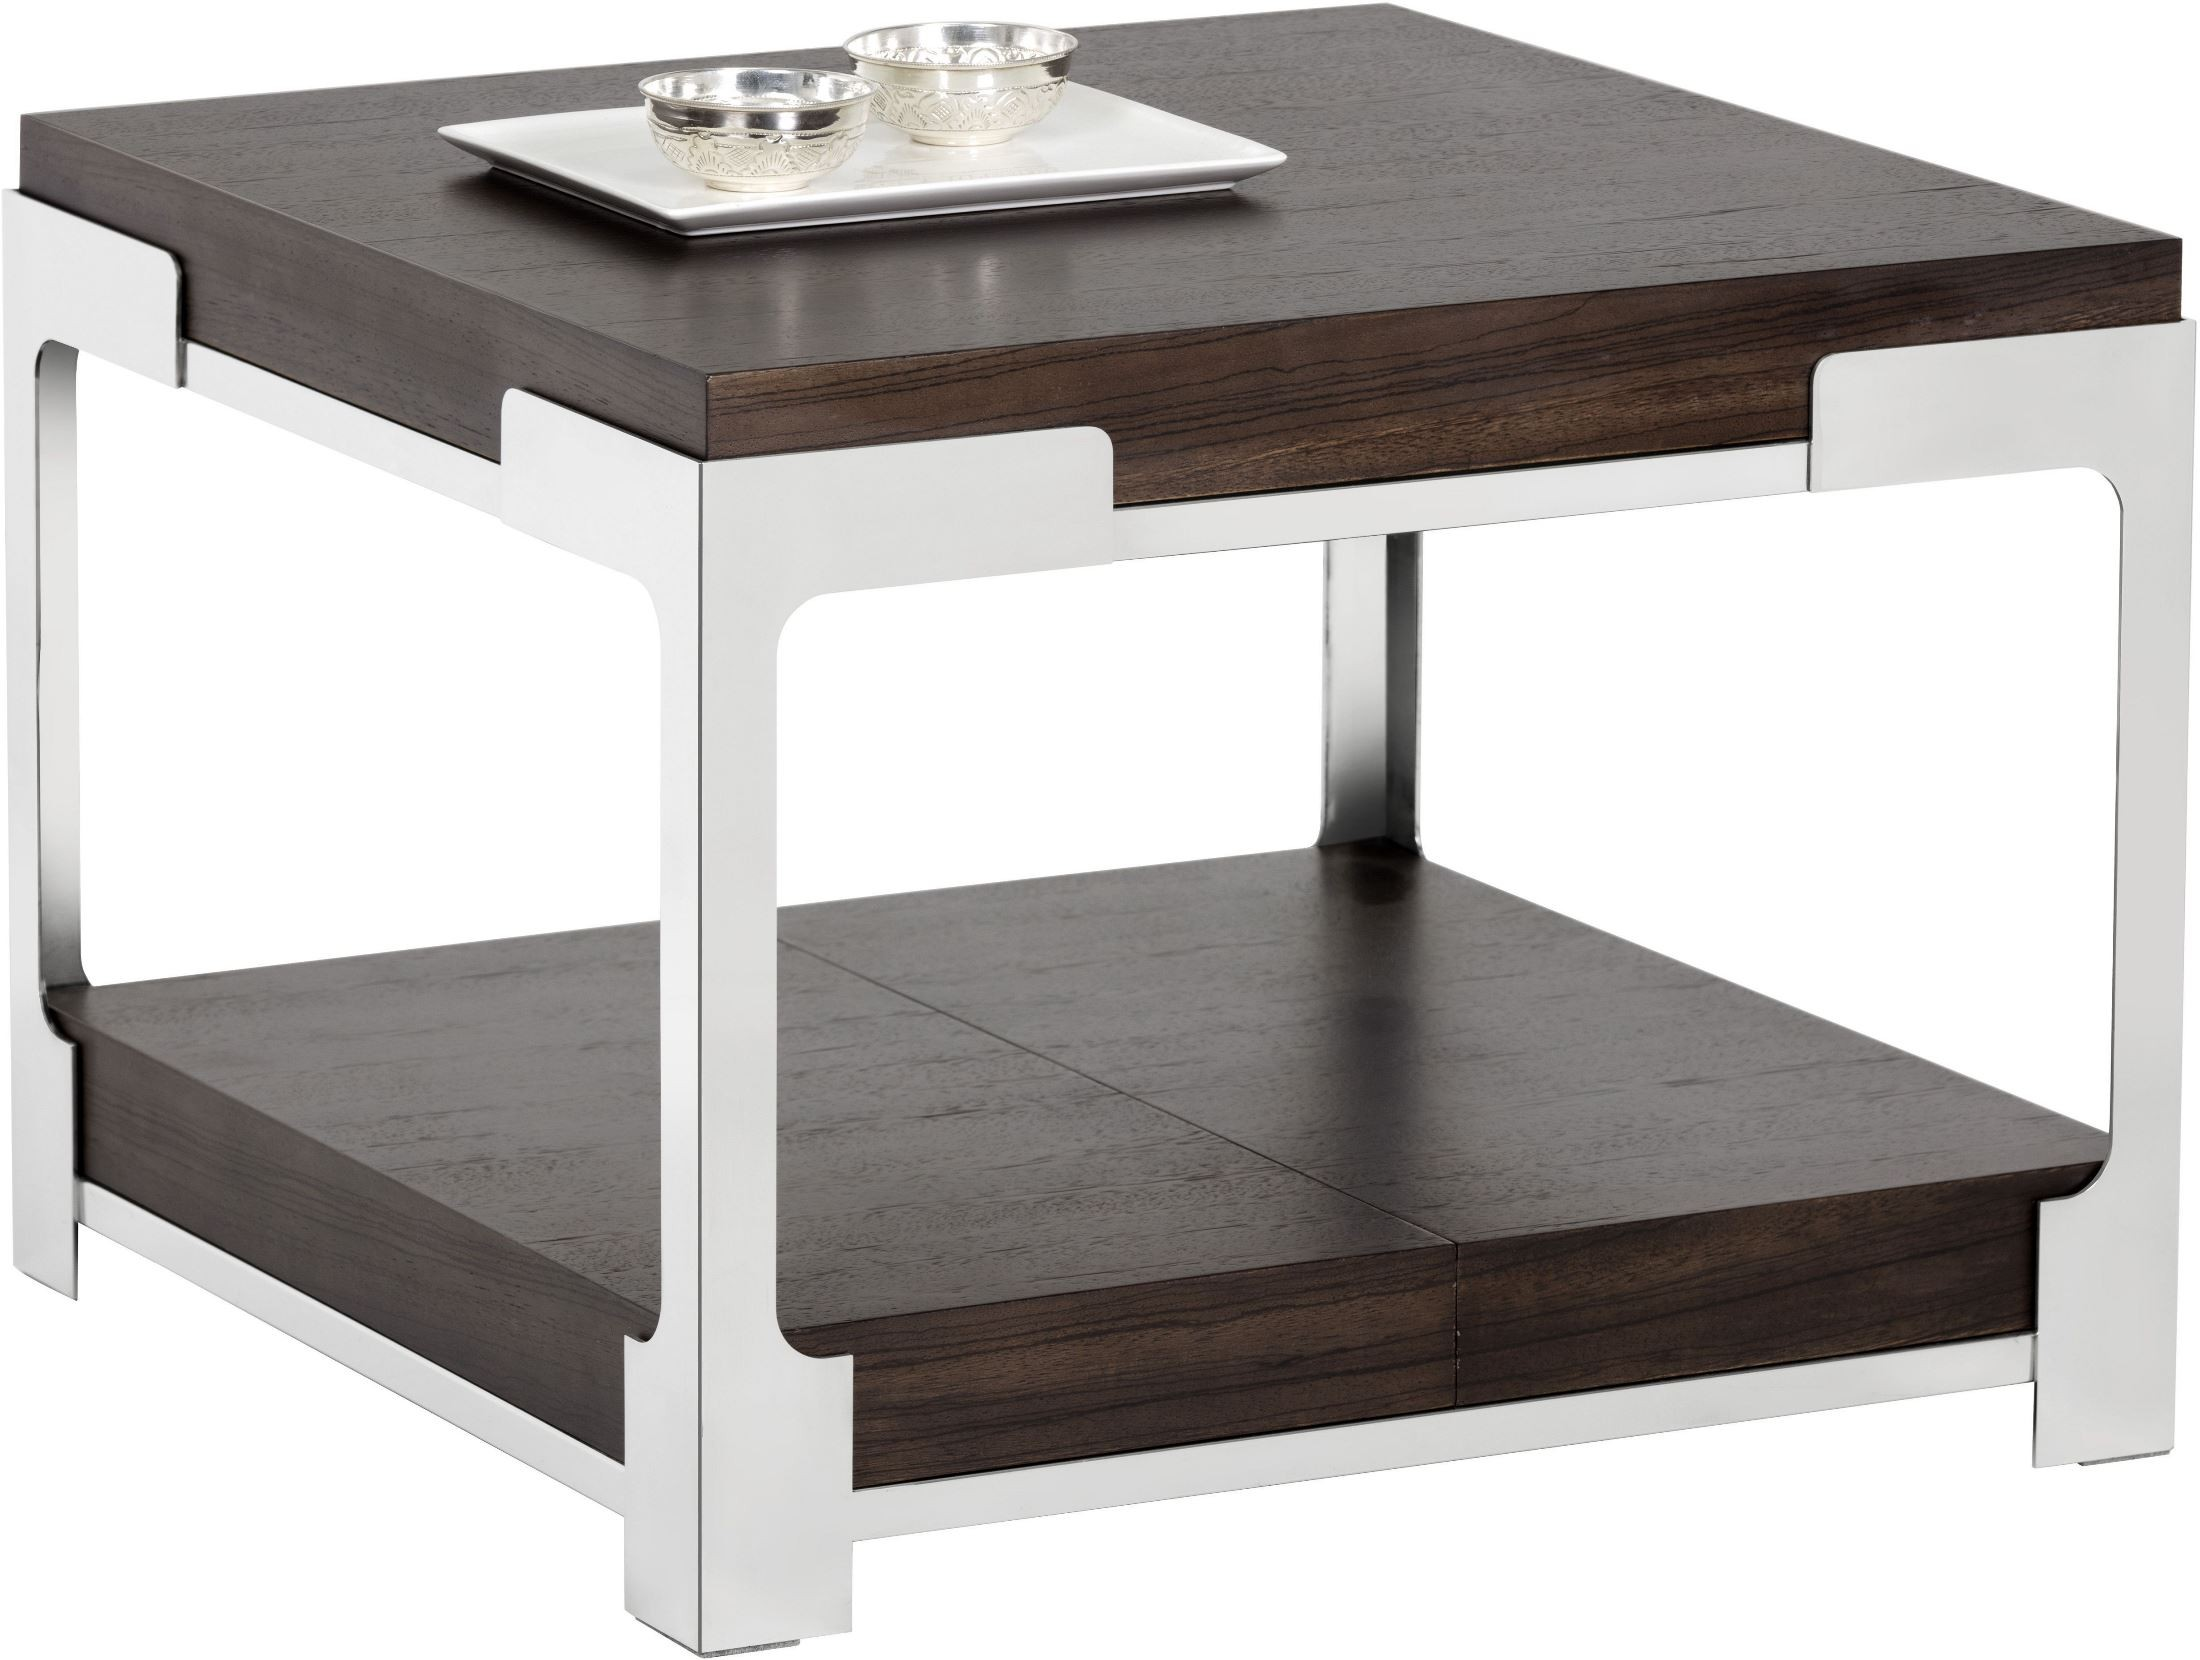 Captivating Davenport Dark Zebra End Table